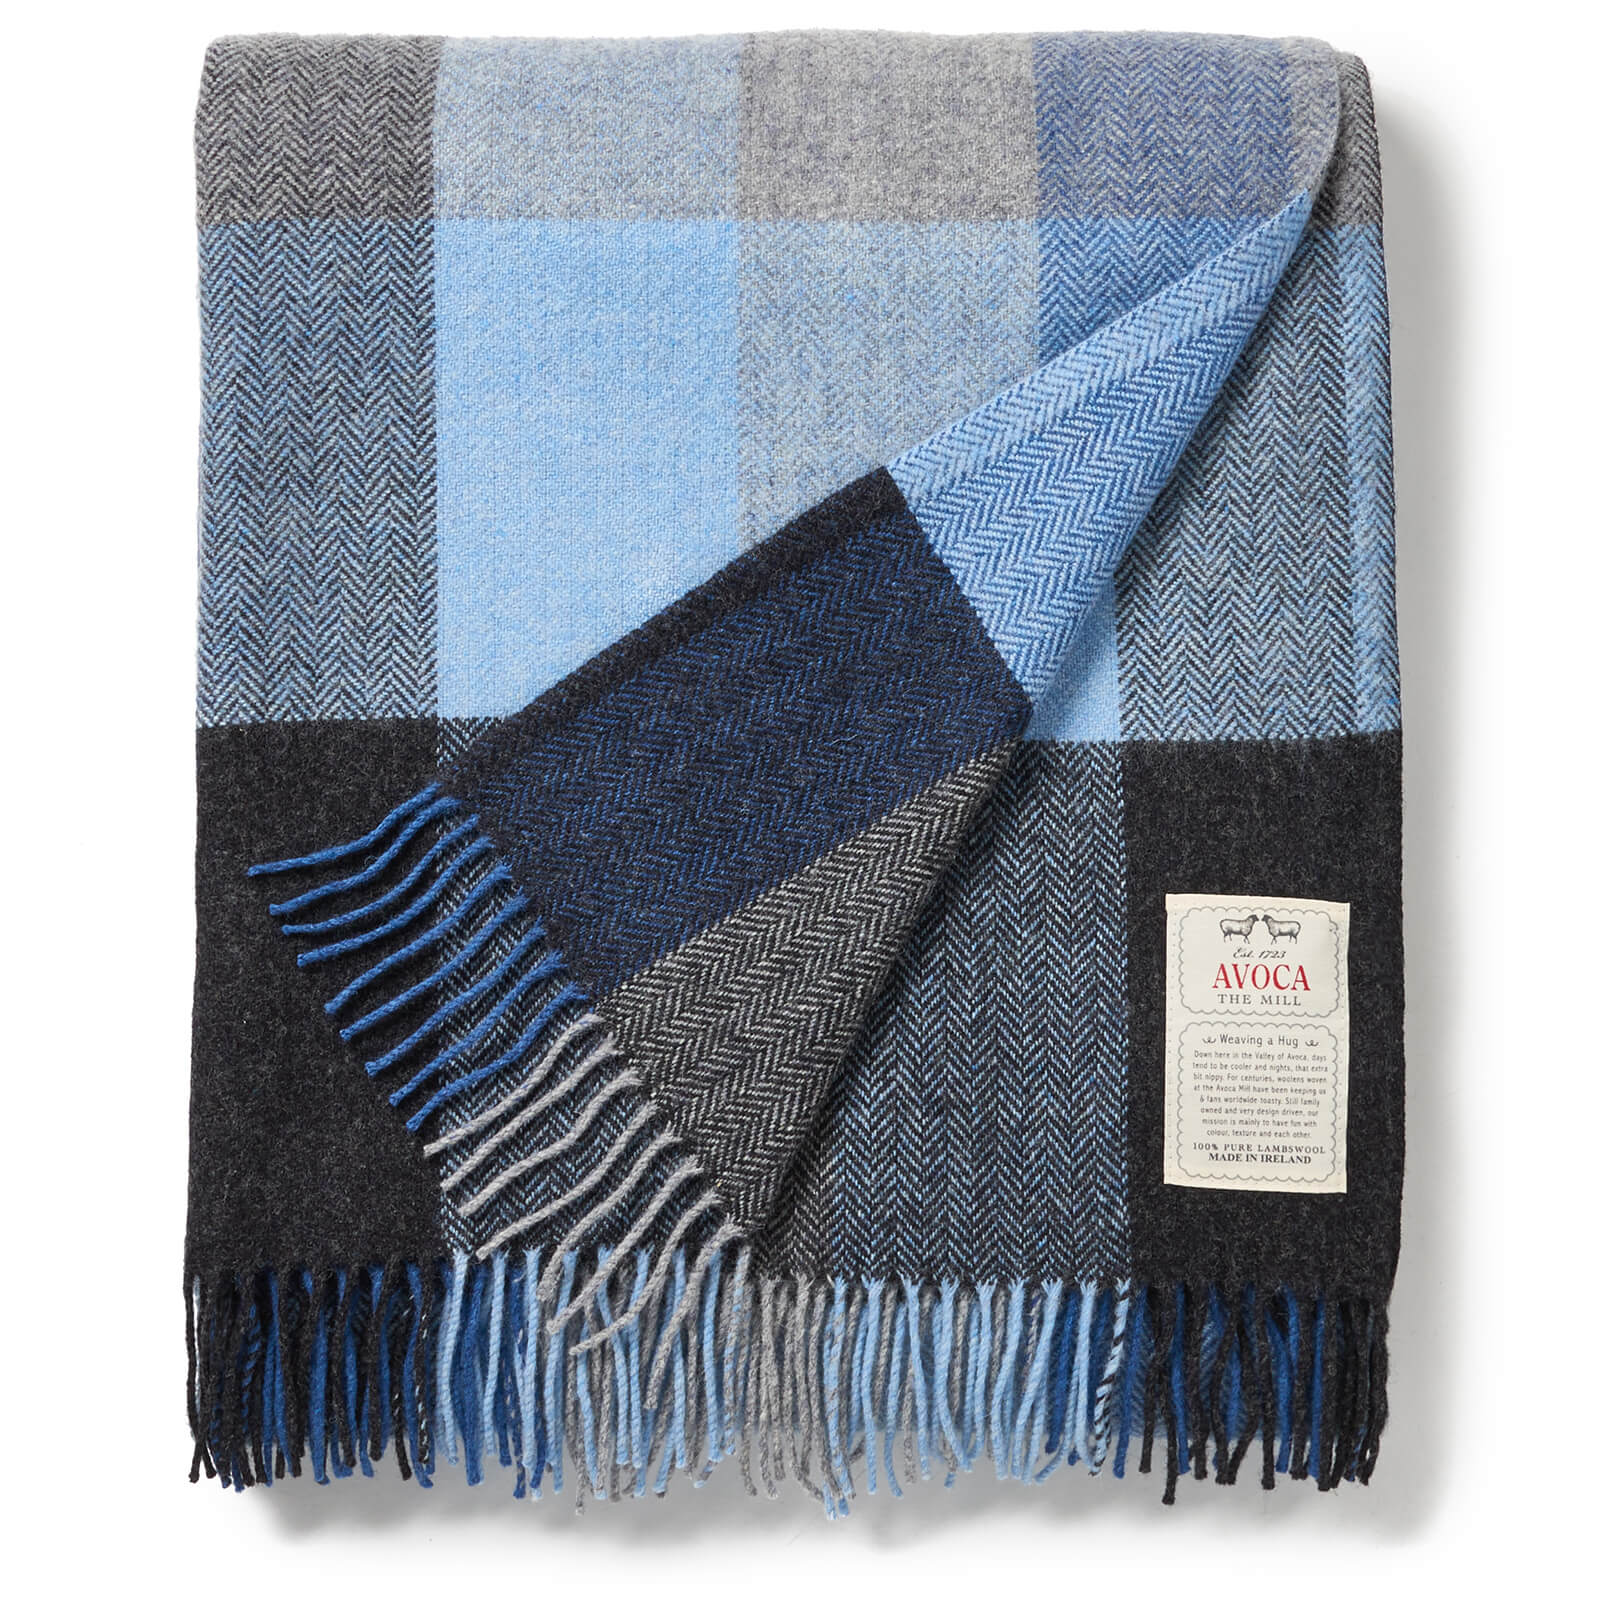 Avoca Lambswool Throw - Denim - 142 x 183cm